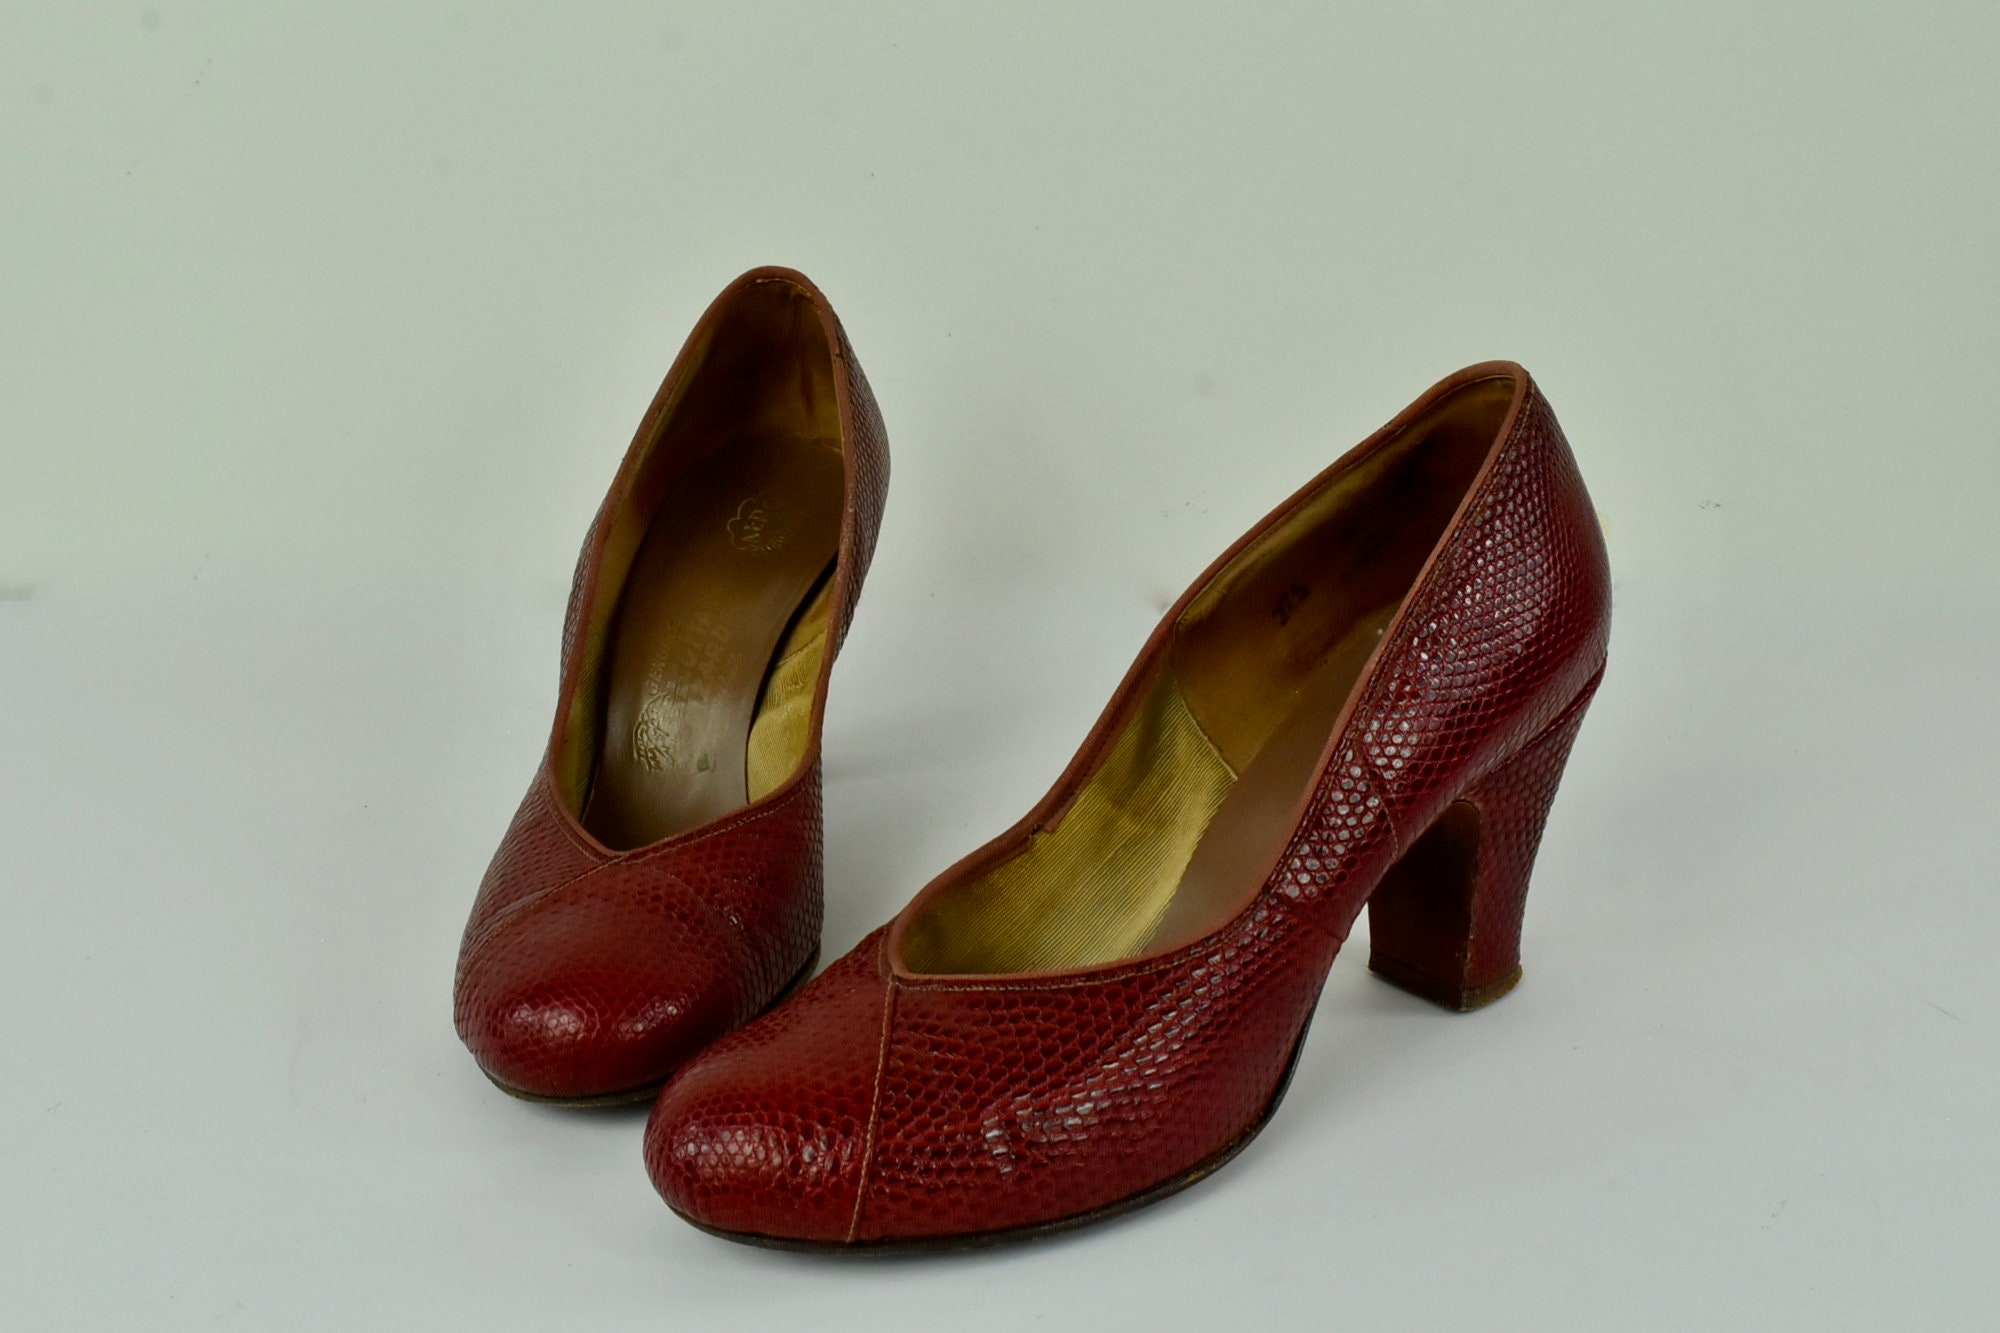 1930s Handbags and Purses Fashion 1950S Red Lizard Heels ... Sensational ...perfect For 1930-50S Fashion........size 7 5 $0.00 AT vintagedancer.com